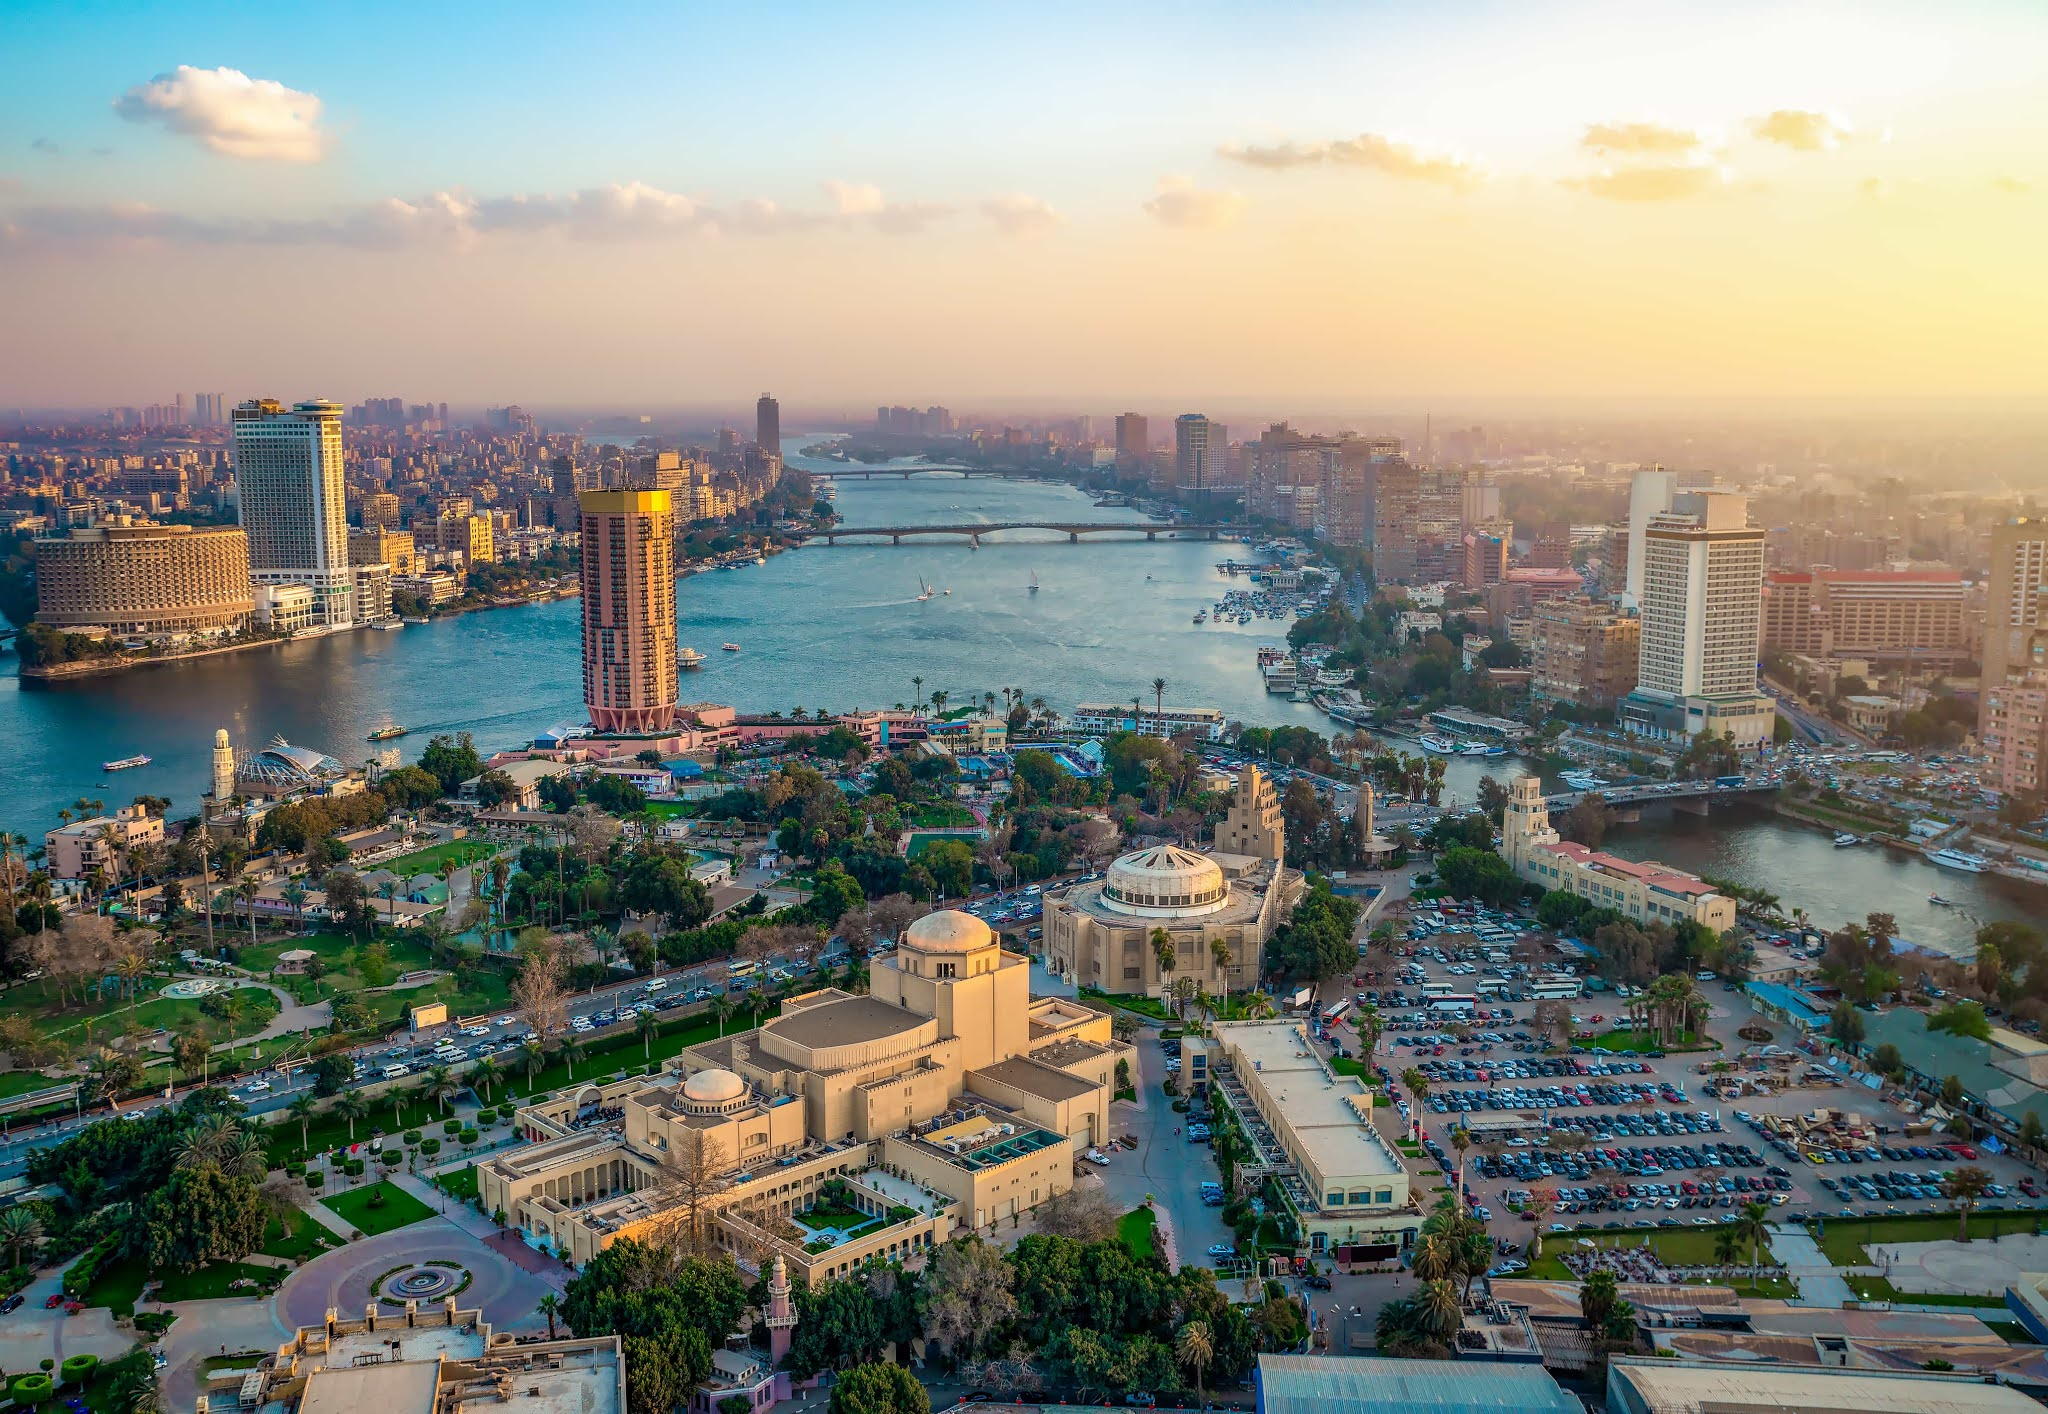 Cairo city - tourism in Egypt